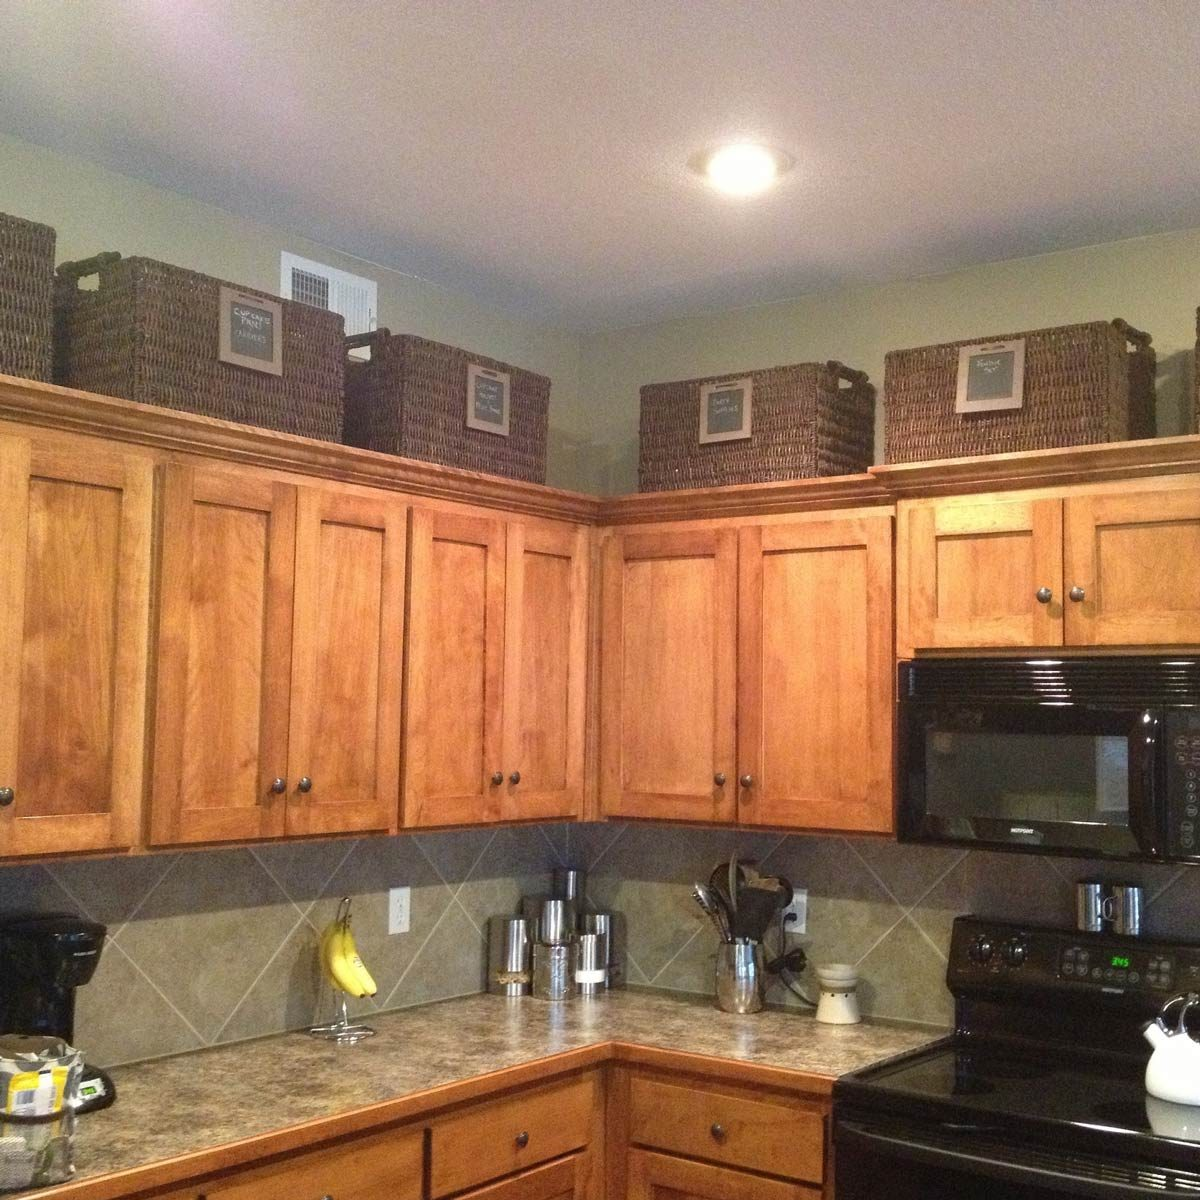 baskets-above-cupboards organizing your kitchen